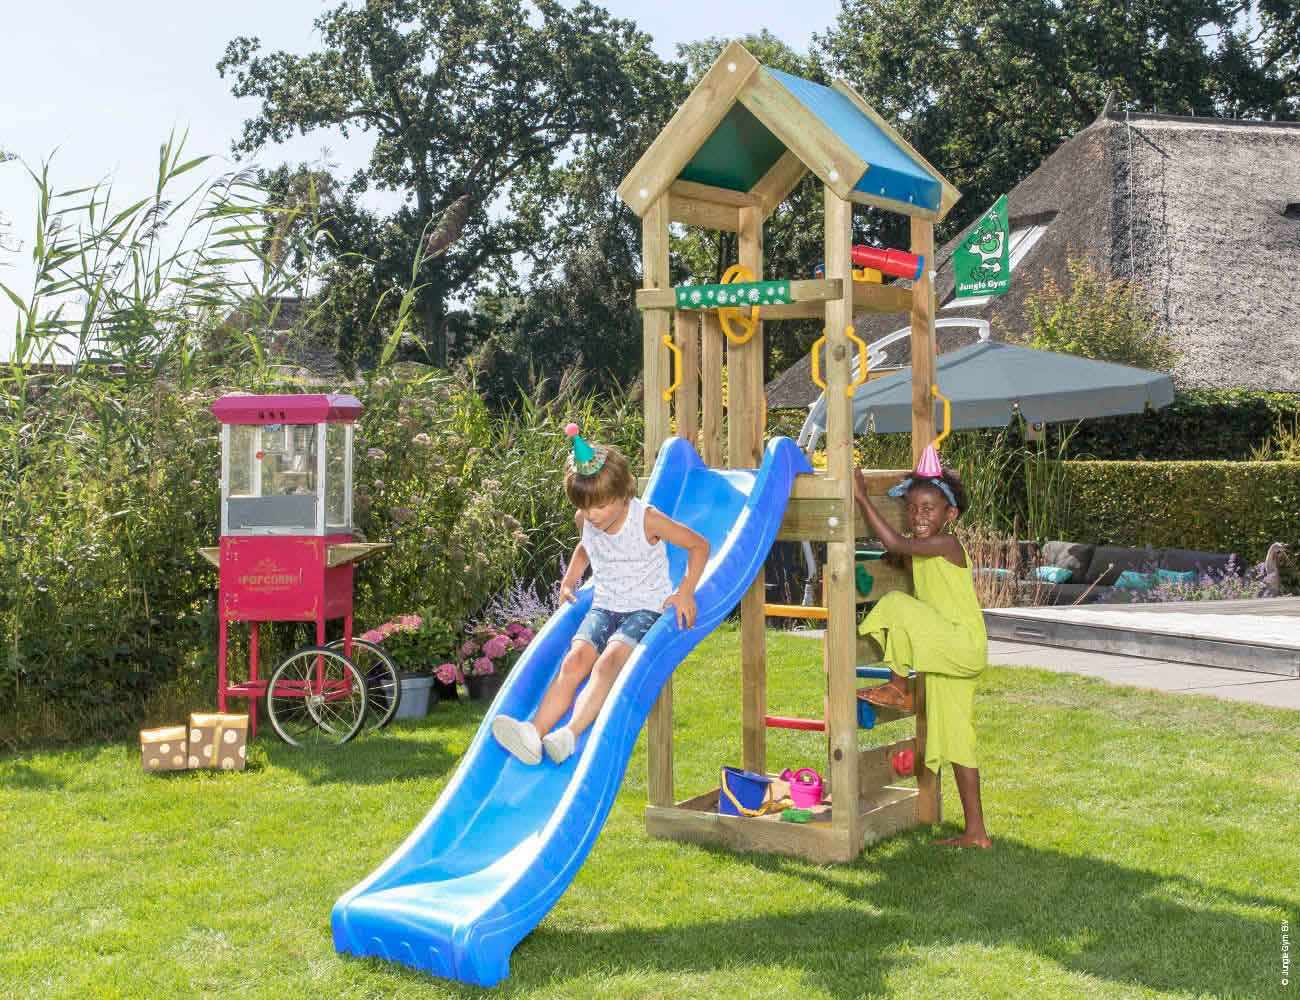 Torretta gioco Patio  con scivolo_mybricoshop-jungle-gym-